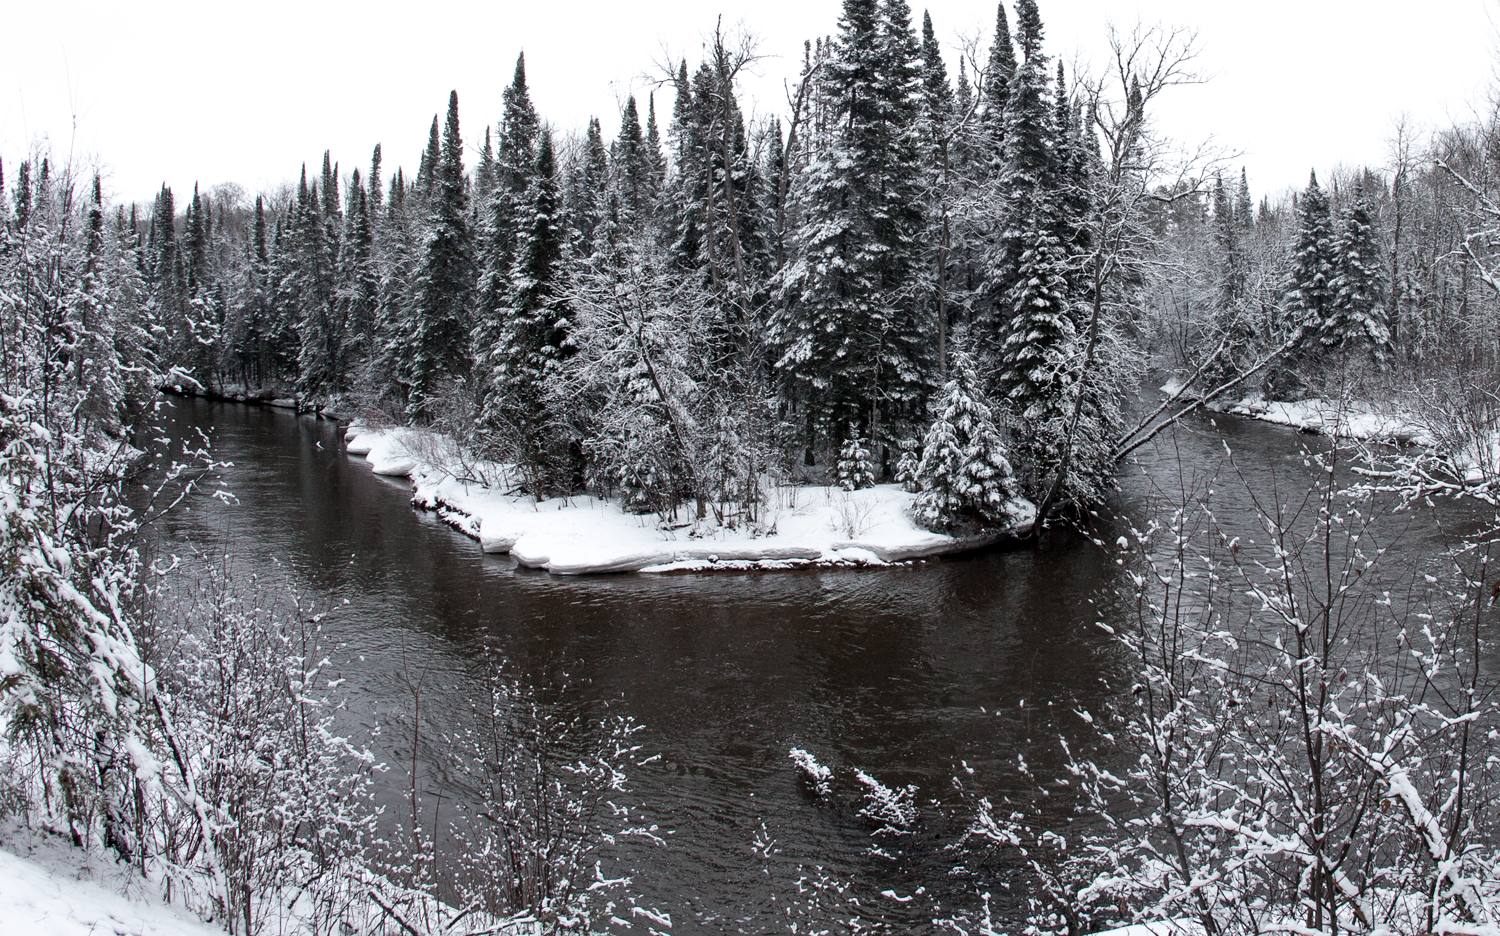 A picture perfect setting for a local Steelhead river.